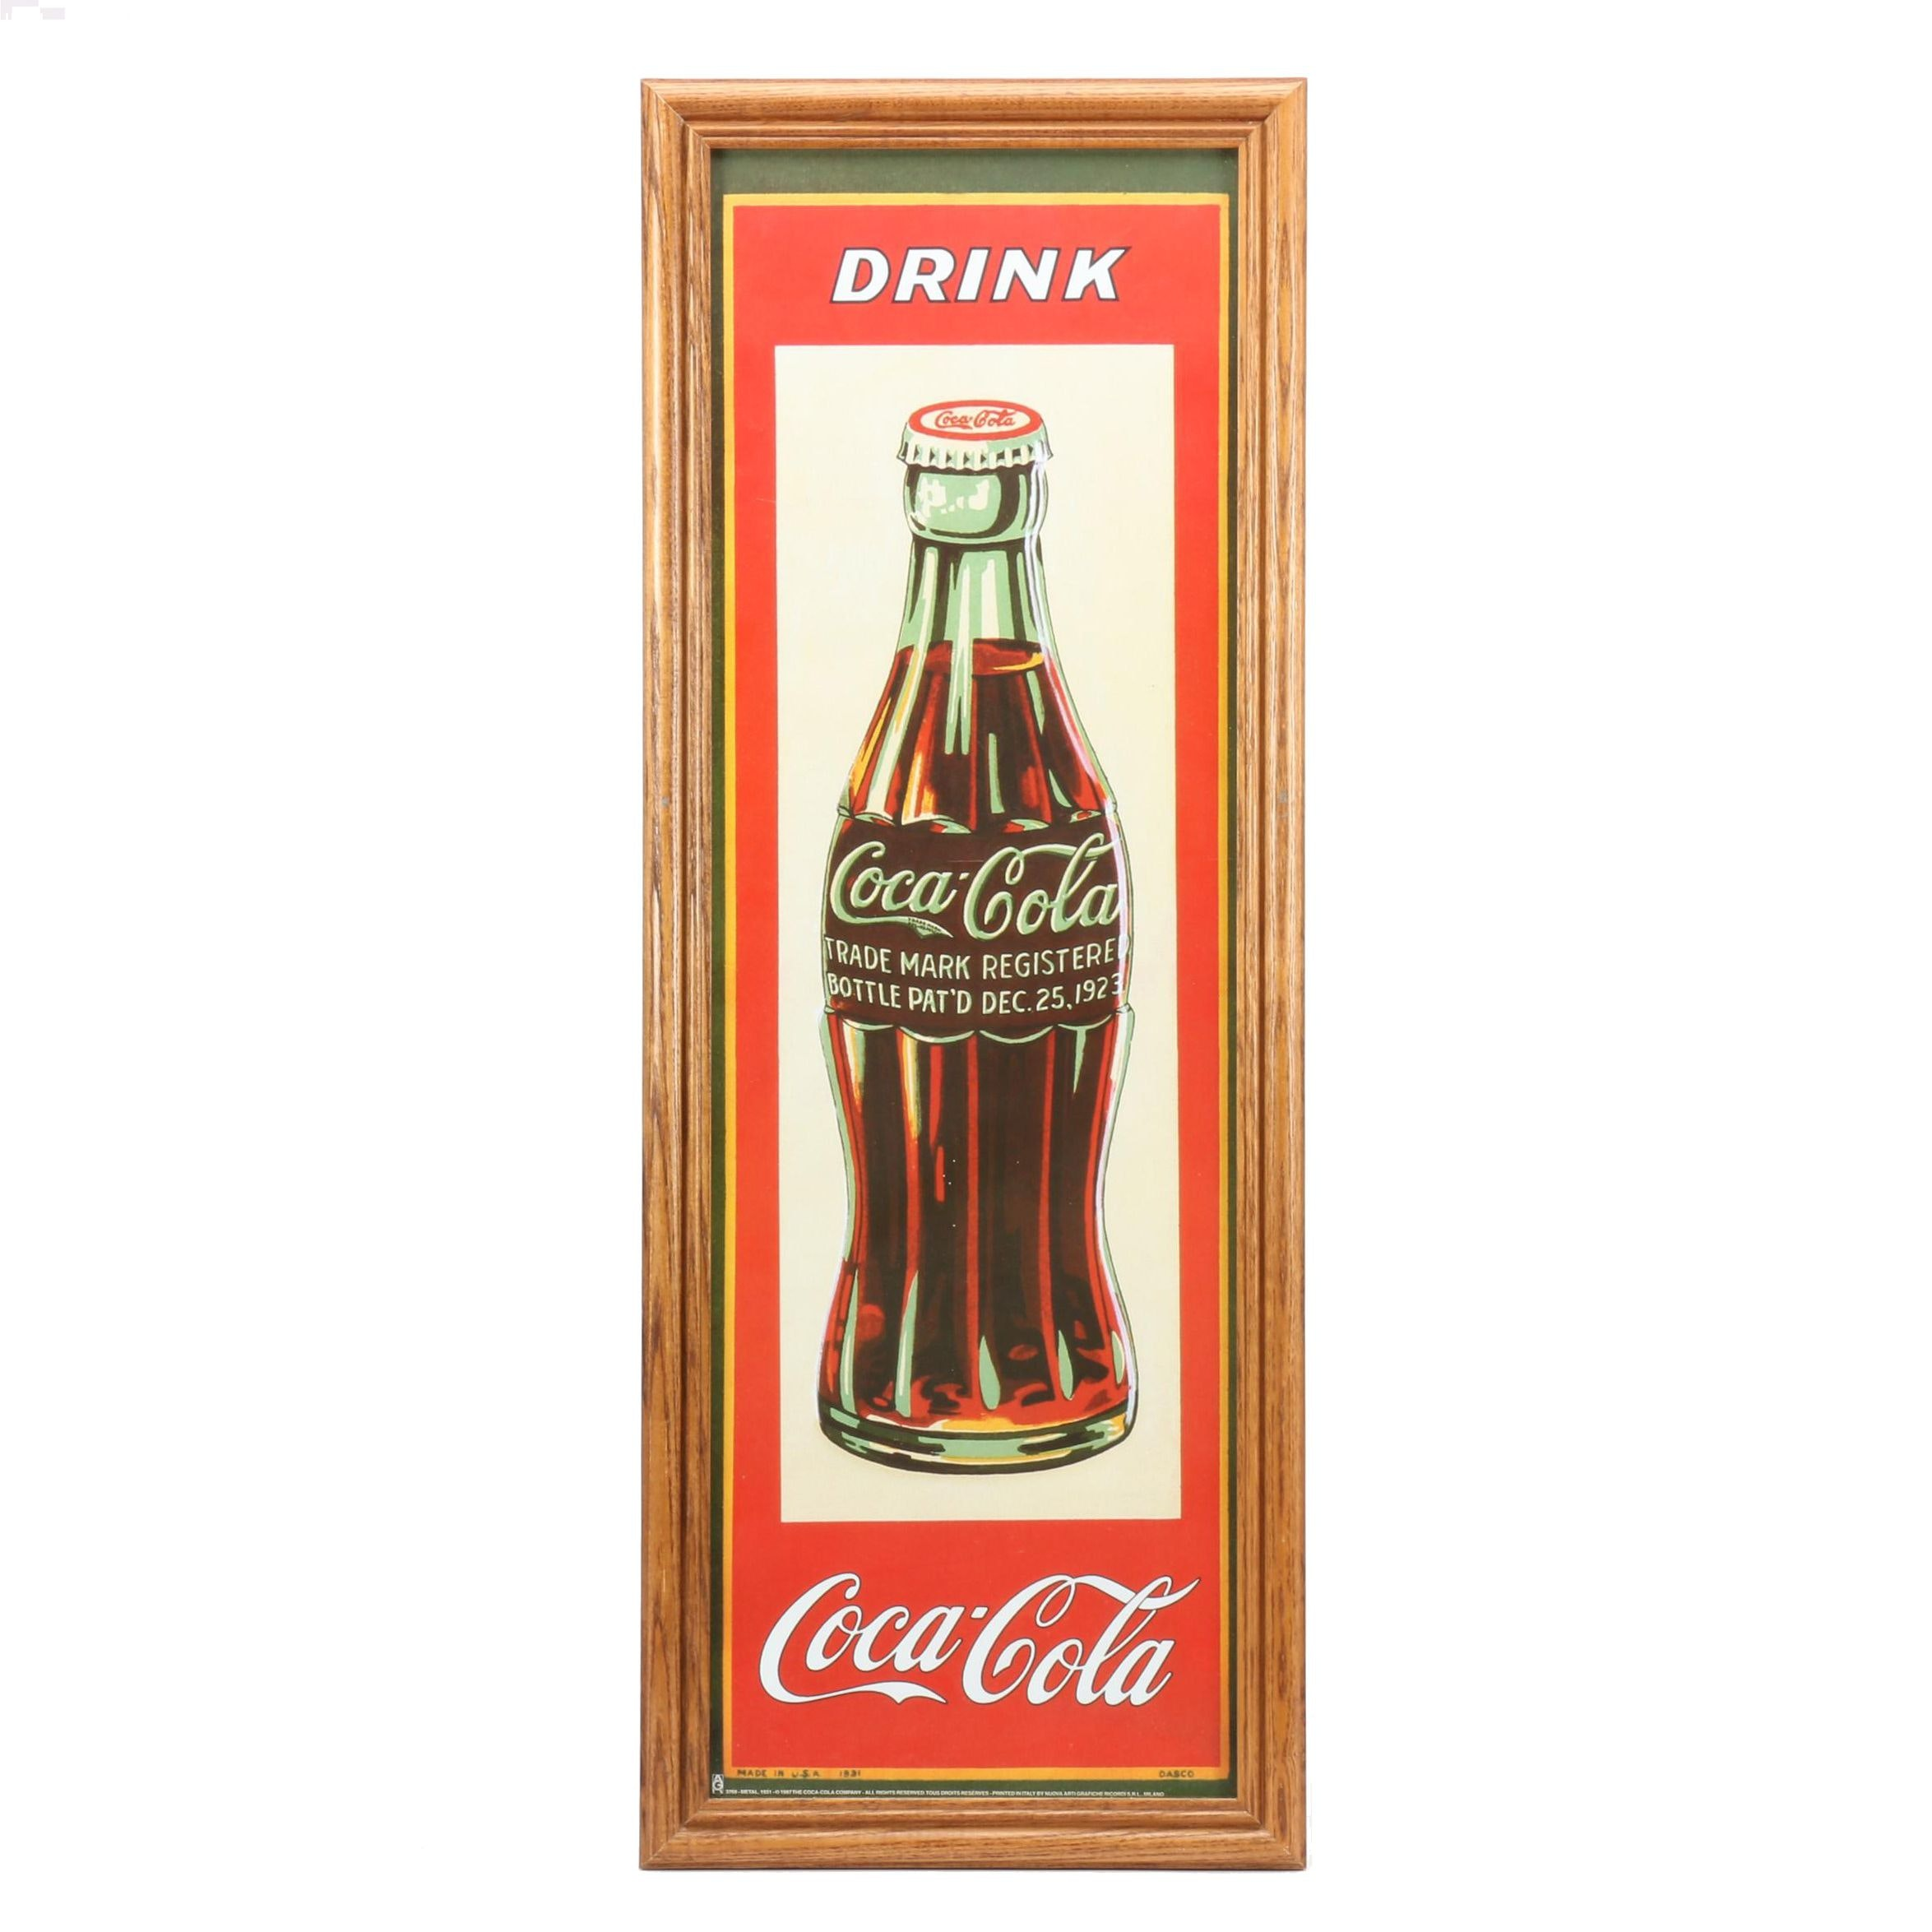 Offset Lithograph After Vintage Poster for Coca-Cola